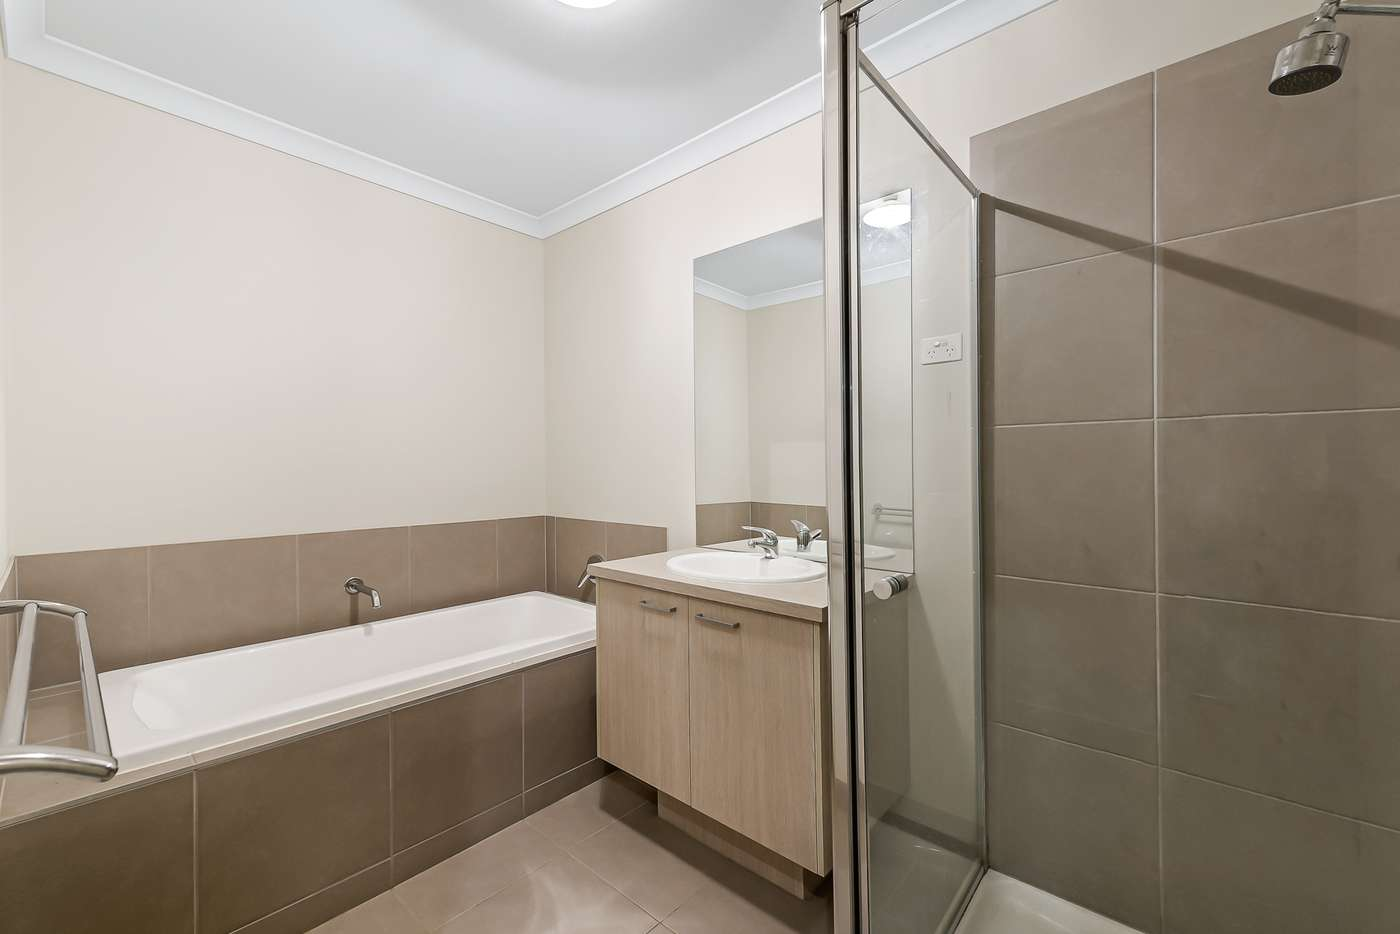 Seventh view of Homely house listing, 12 Burchill Avenue, Cranbourne East VIC 3977